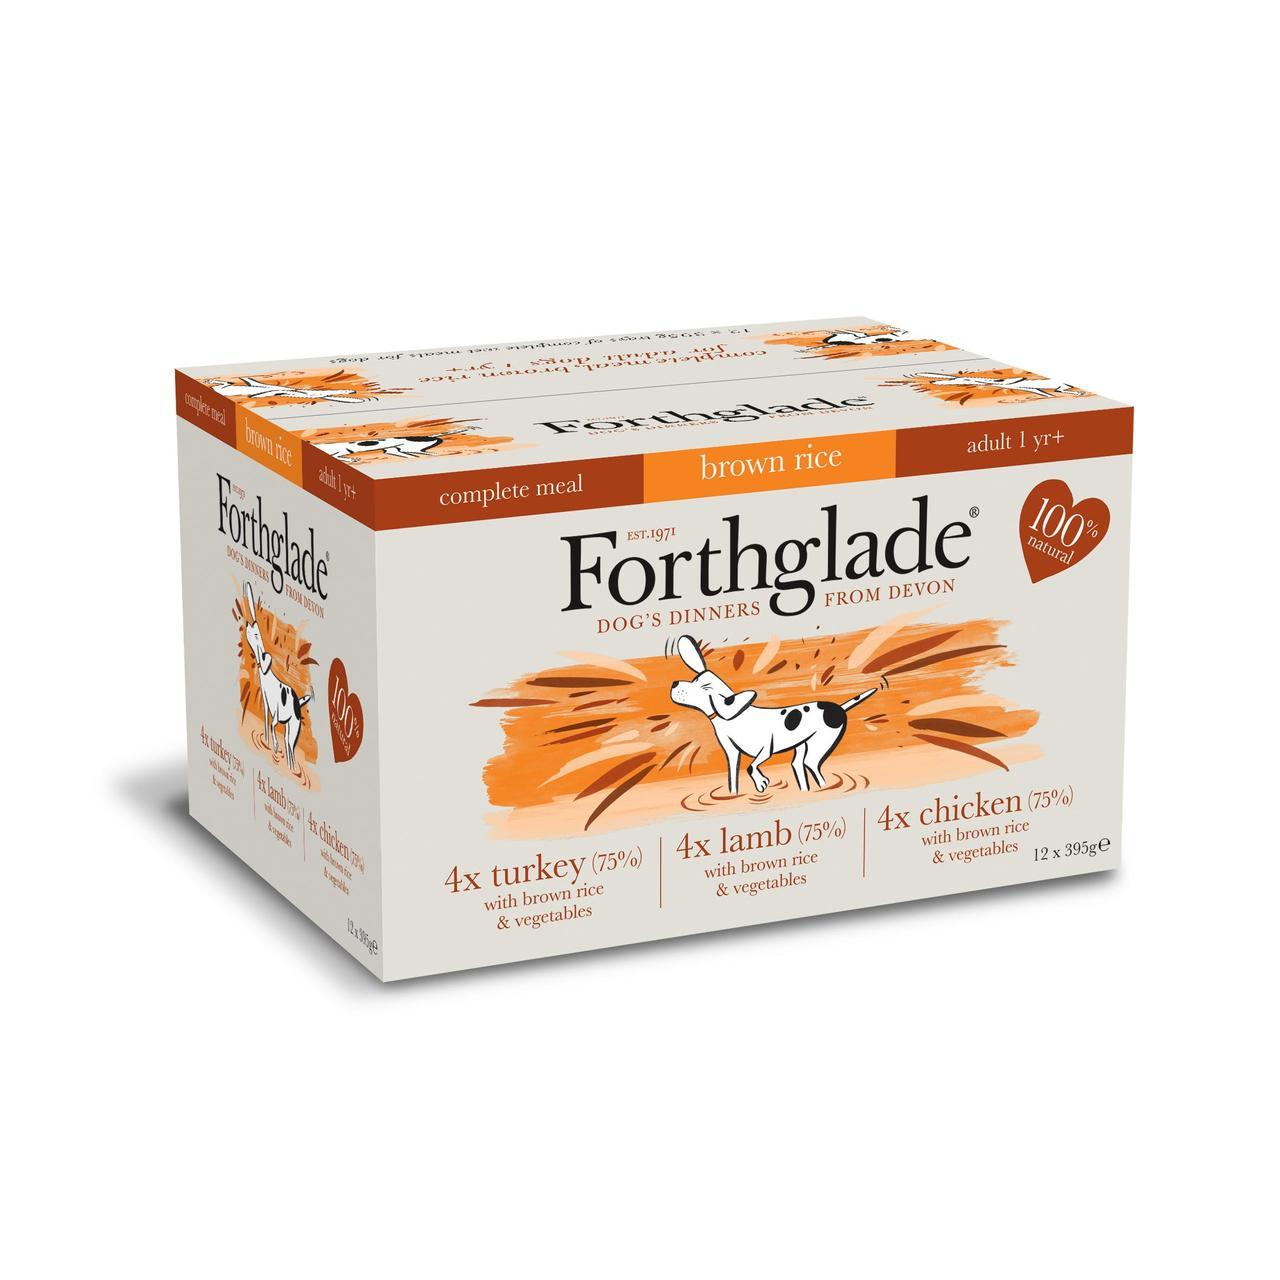 Forthglade Complete Adult Multicase (Lamb, Turkey & Chicken with Brown Rice)